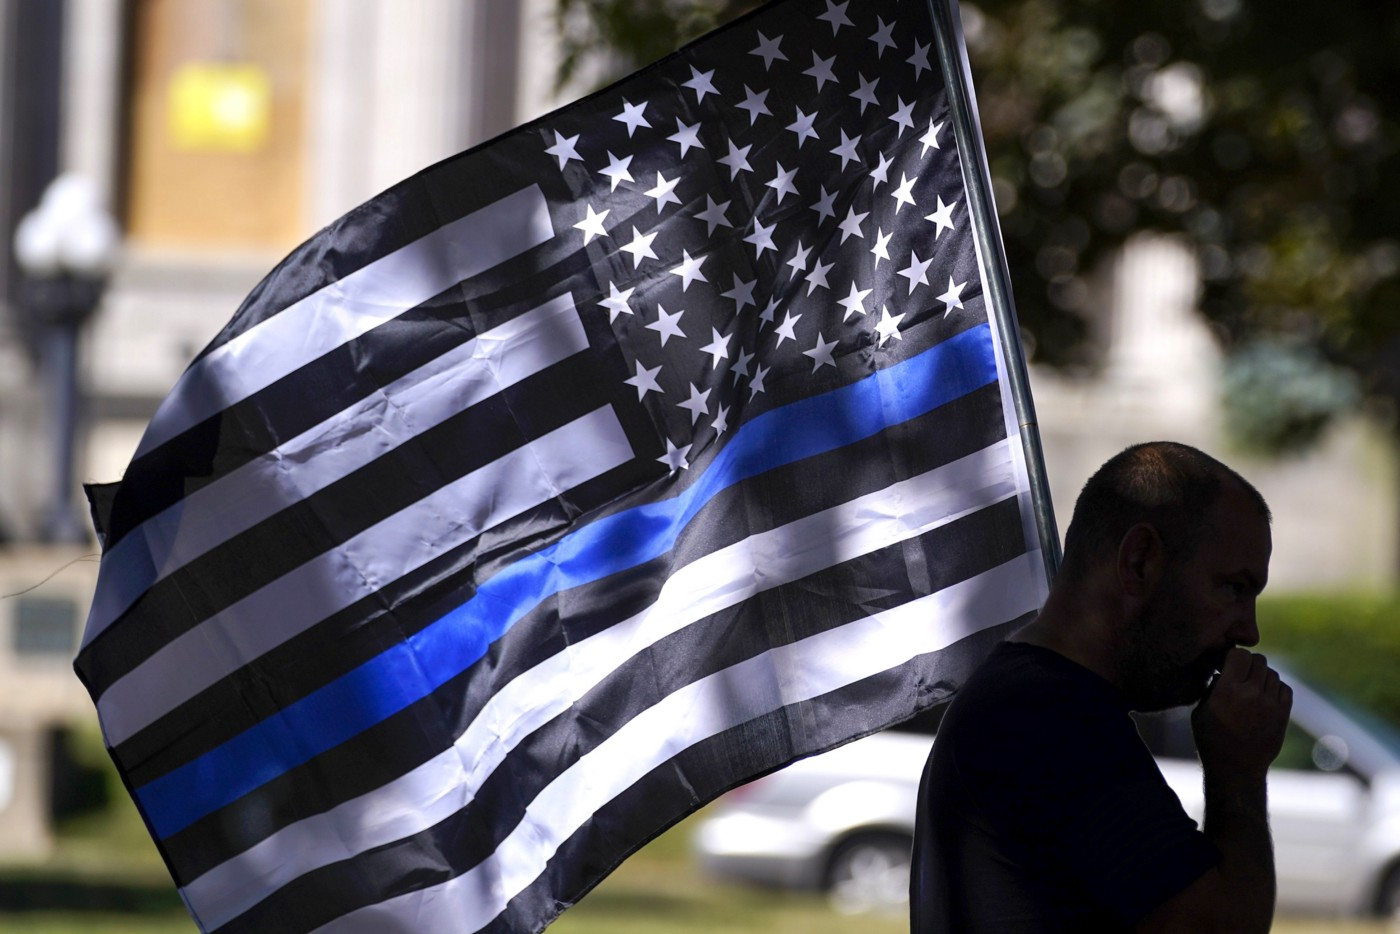 Person carrying the black American flag supposedly showing support for police